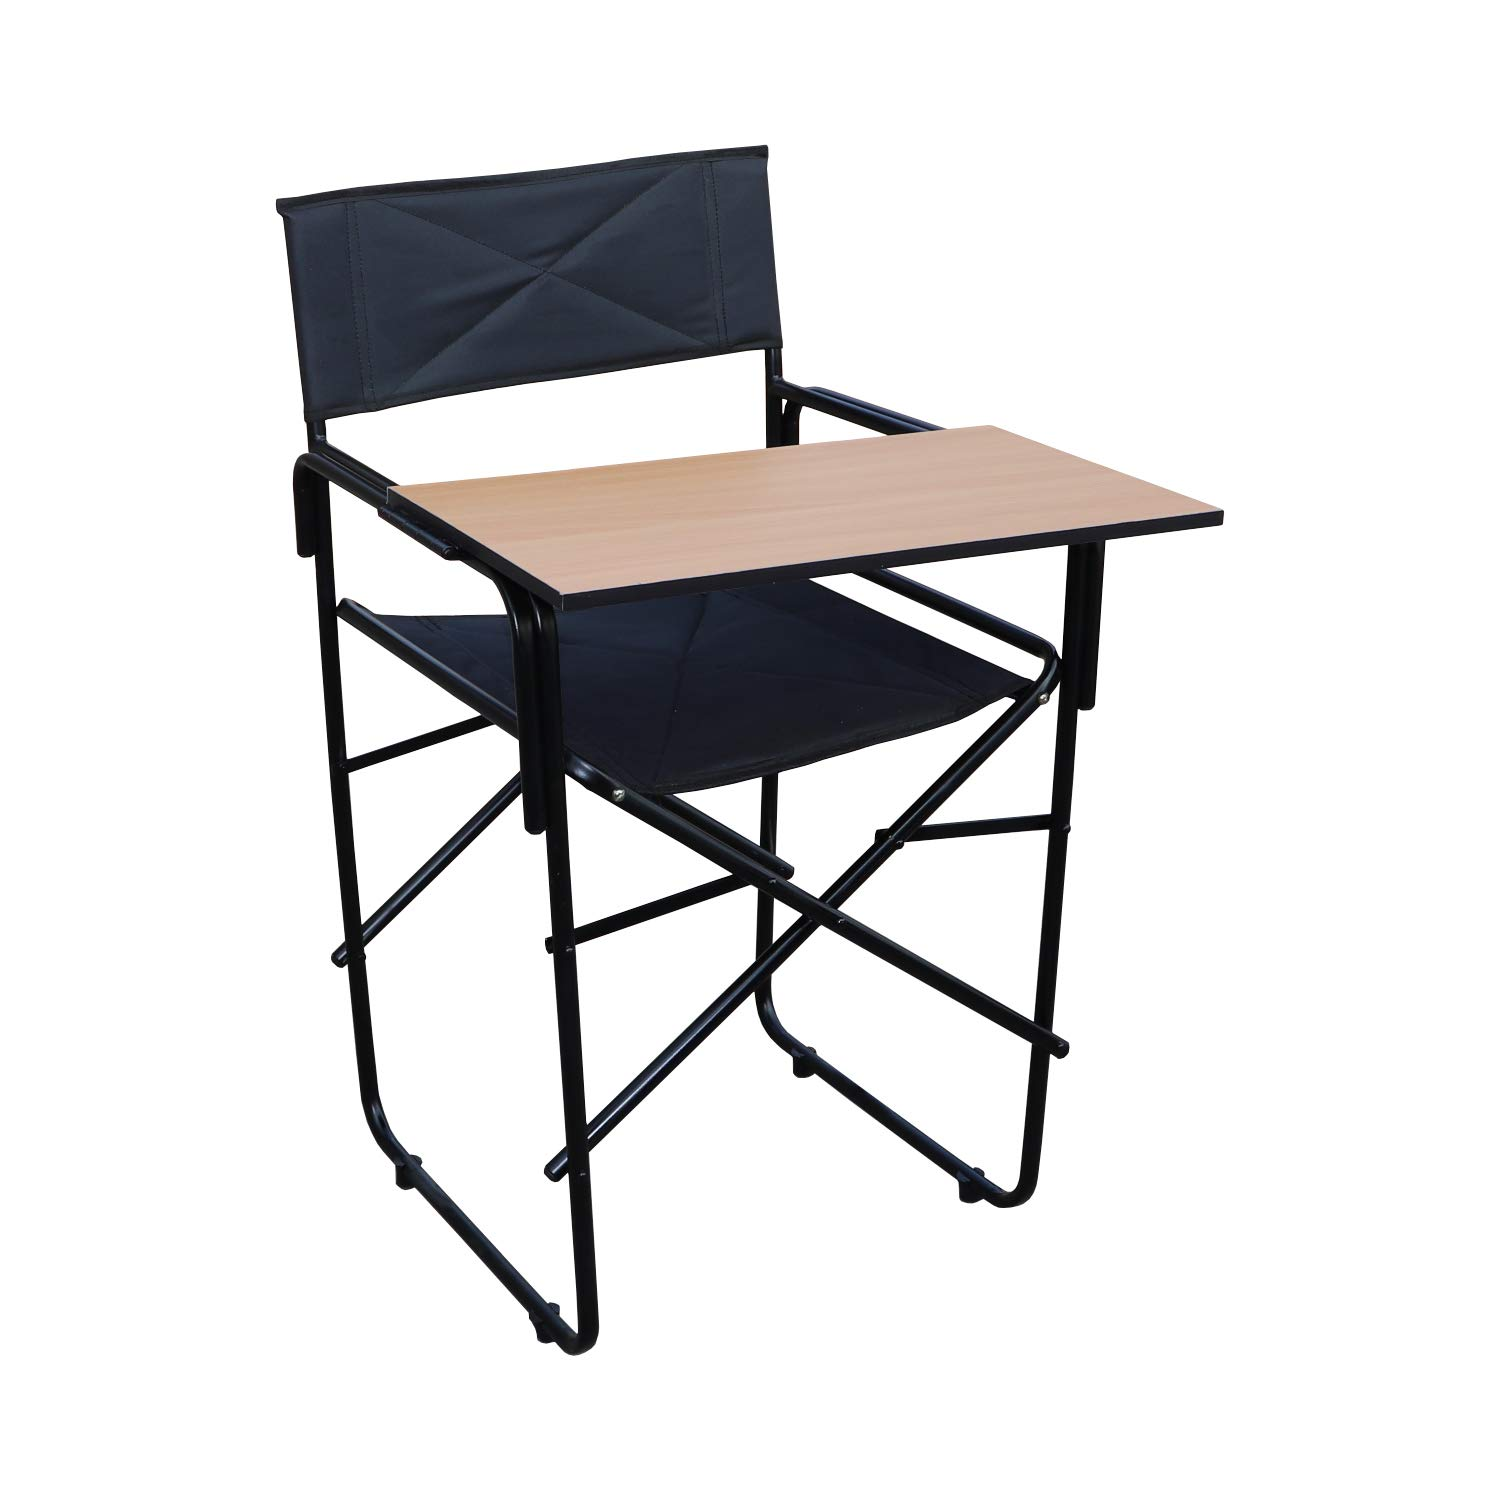 Spacecrafts Folding Study Chair with Writing pad (Standard, Black)